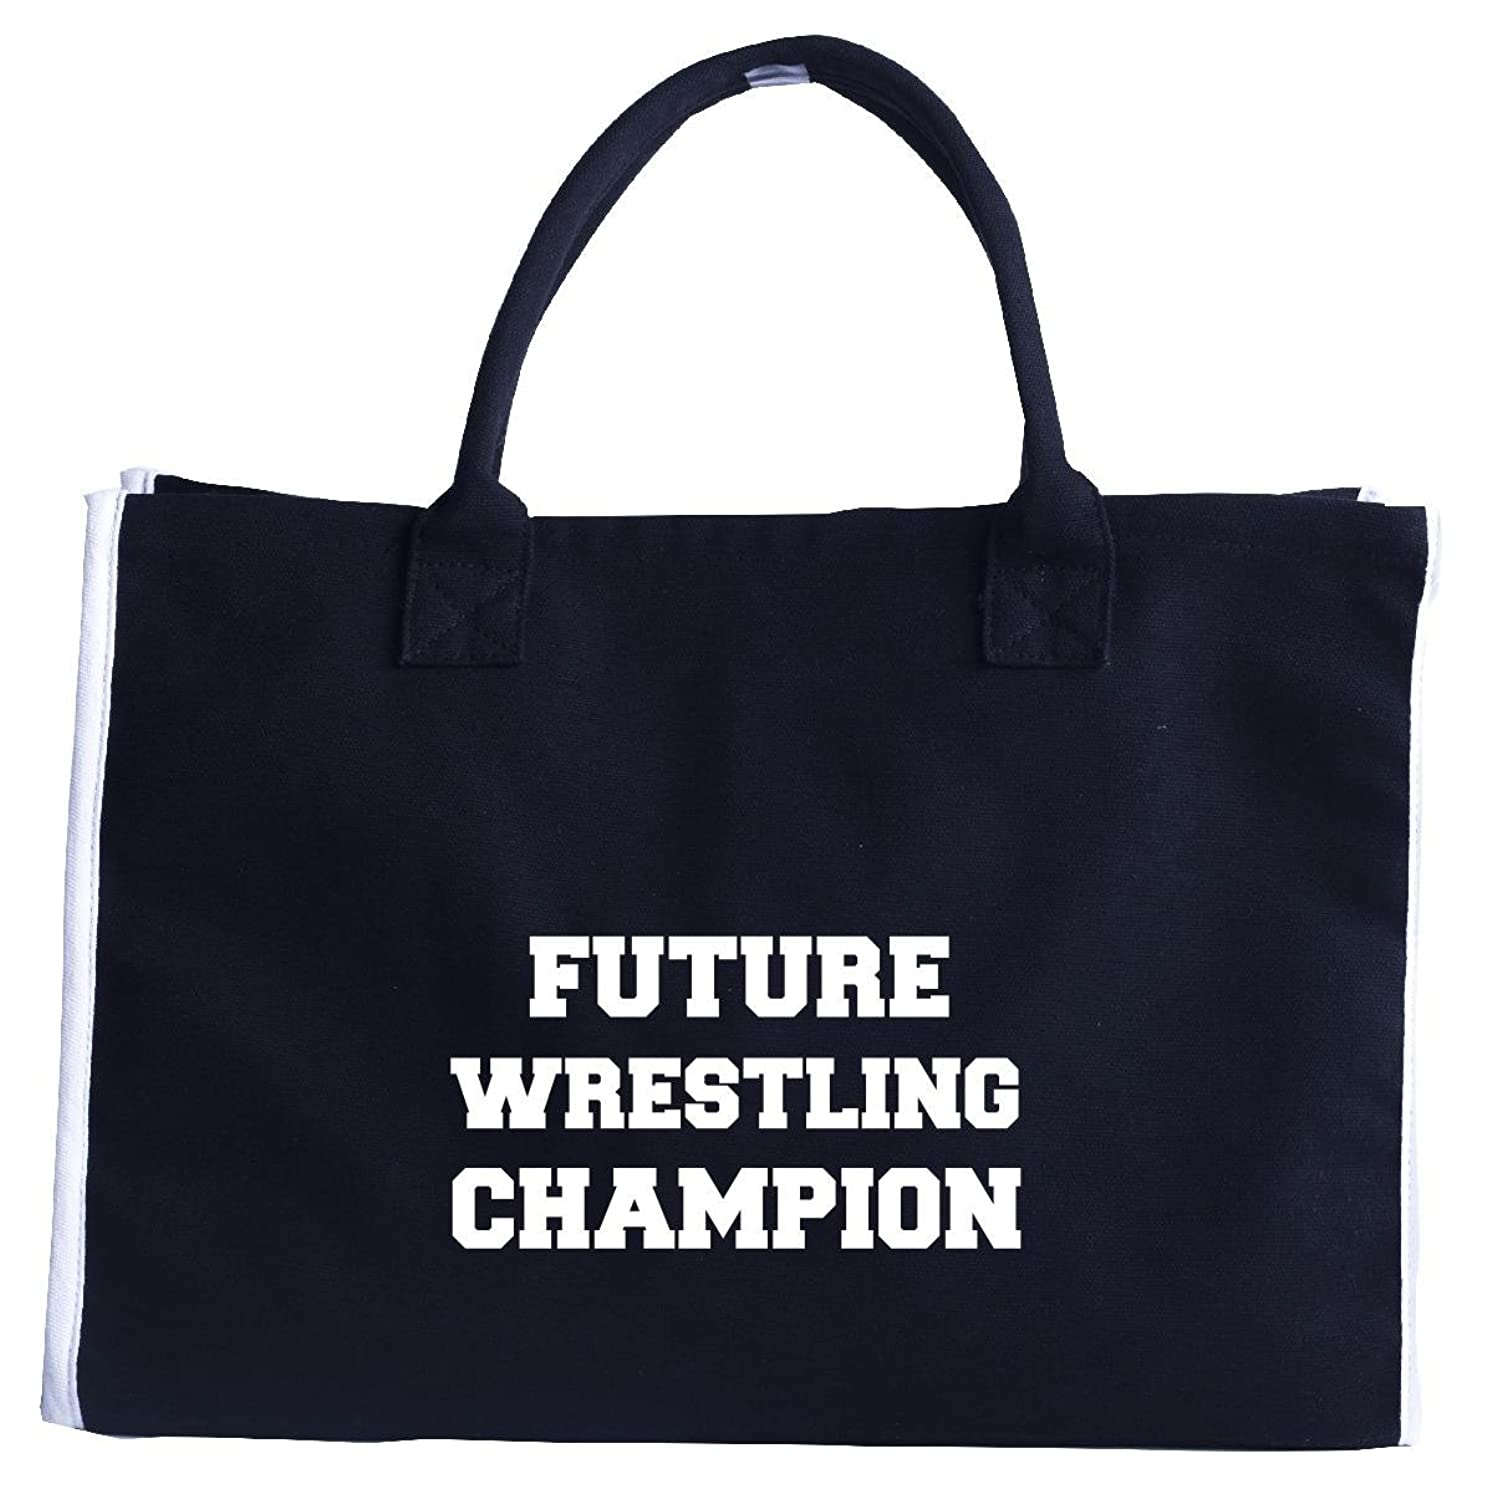 Future Wrestling Champion - Tote Bag